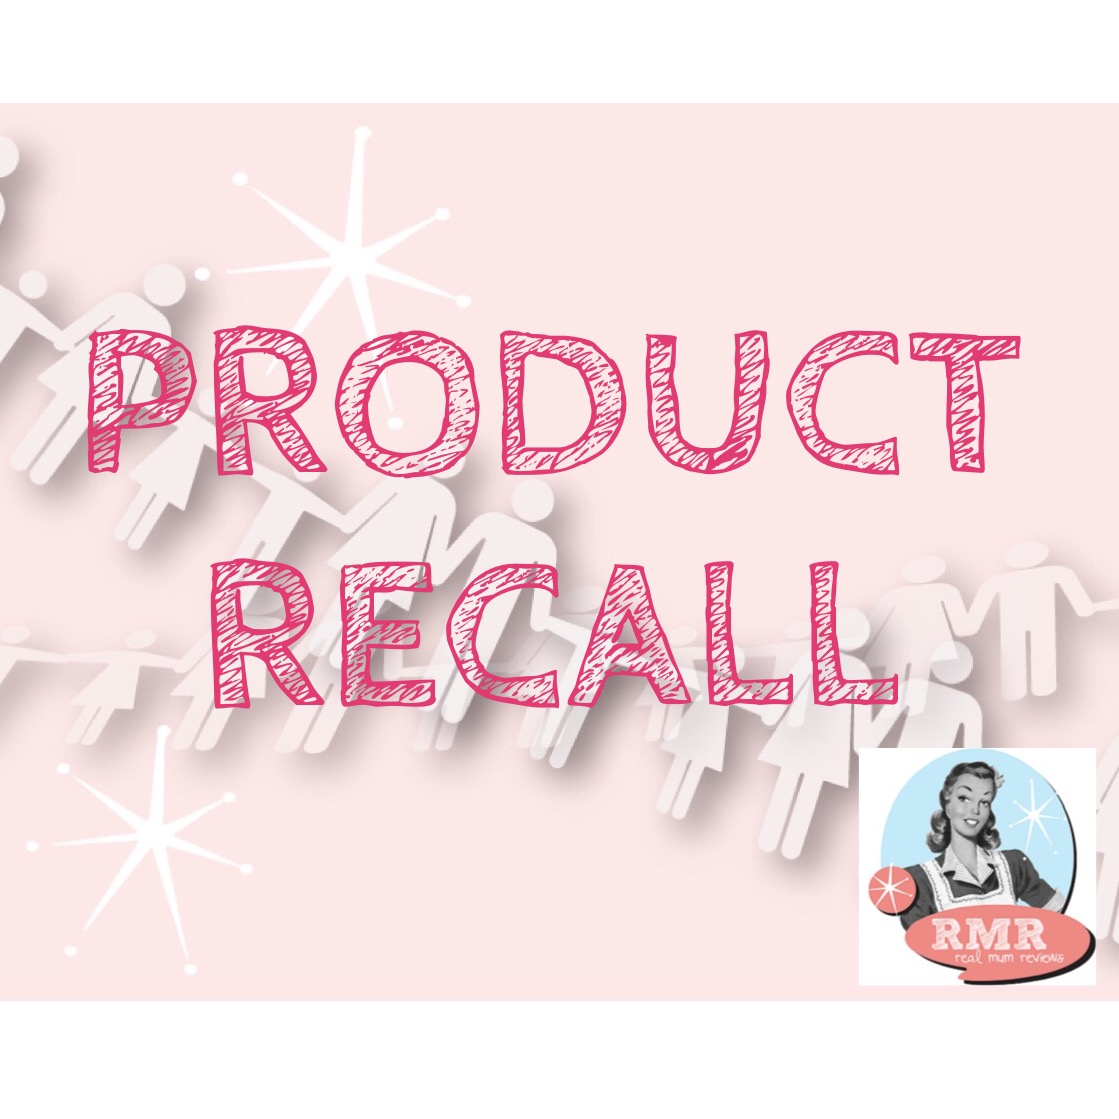 Product Recall - Paw Patrol Slippers